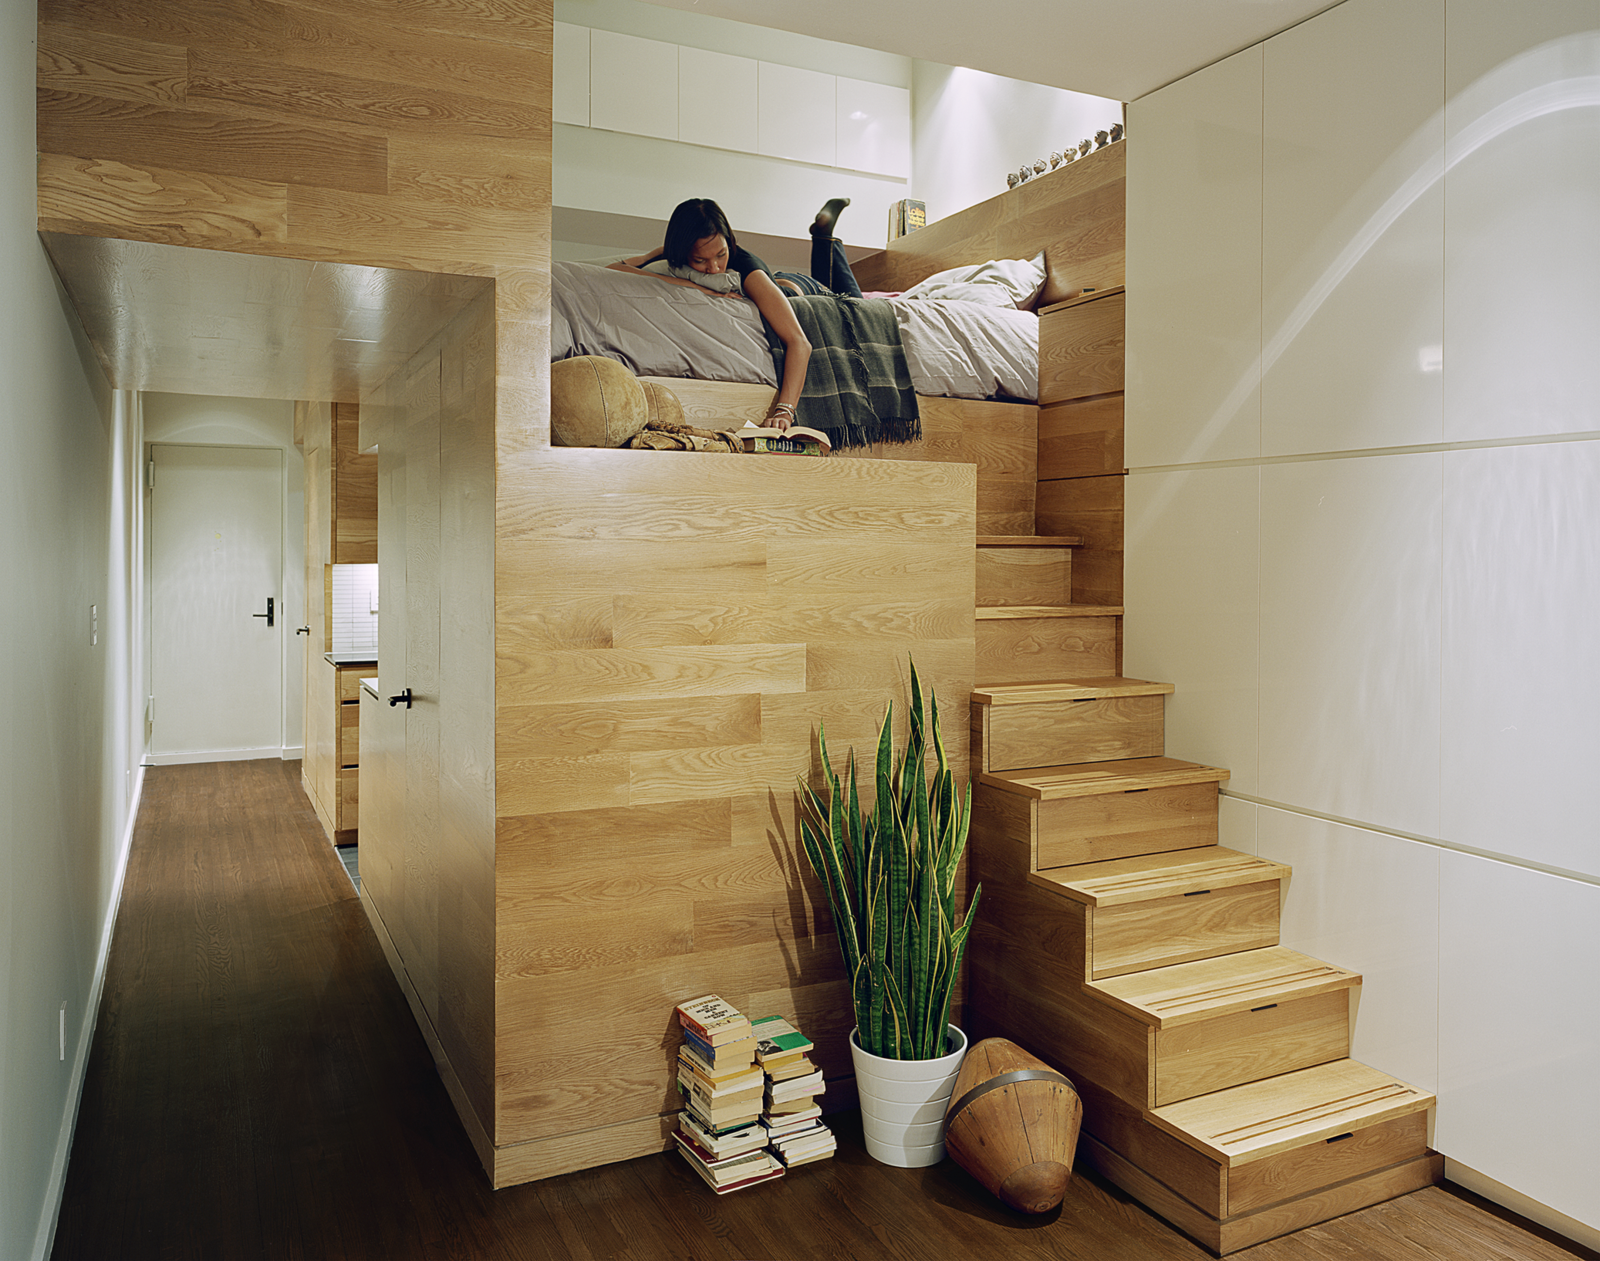 East Village Studio, Jordan Parnass p26-29  Photo 12 of 16 in Gestalten's New Book Shows How to Transform Small Spaces Into Design Marvels